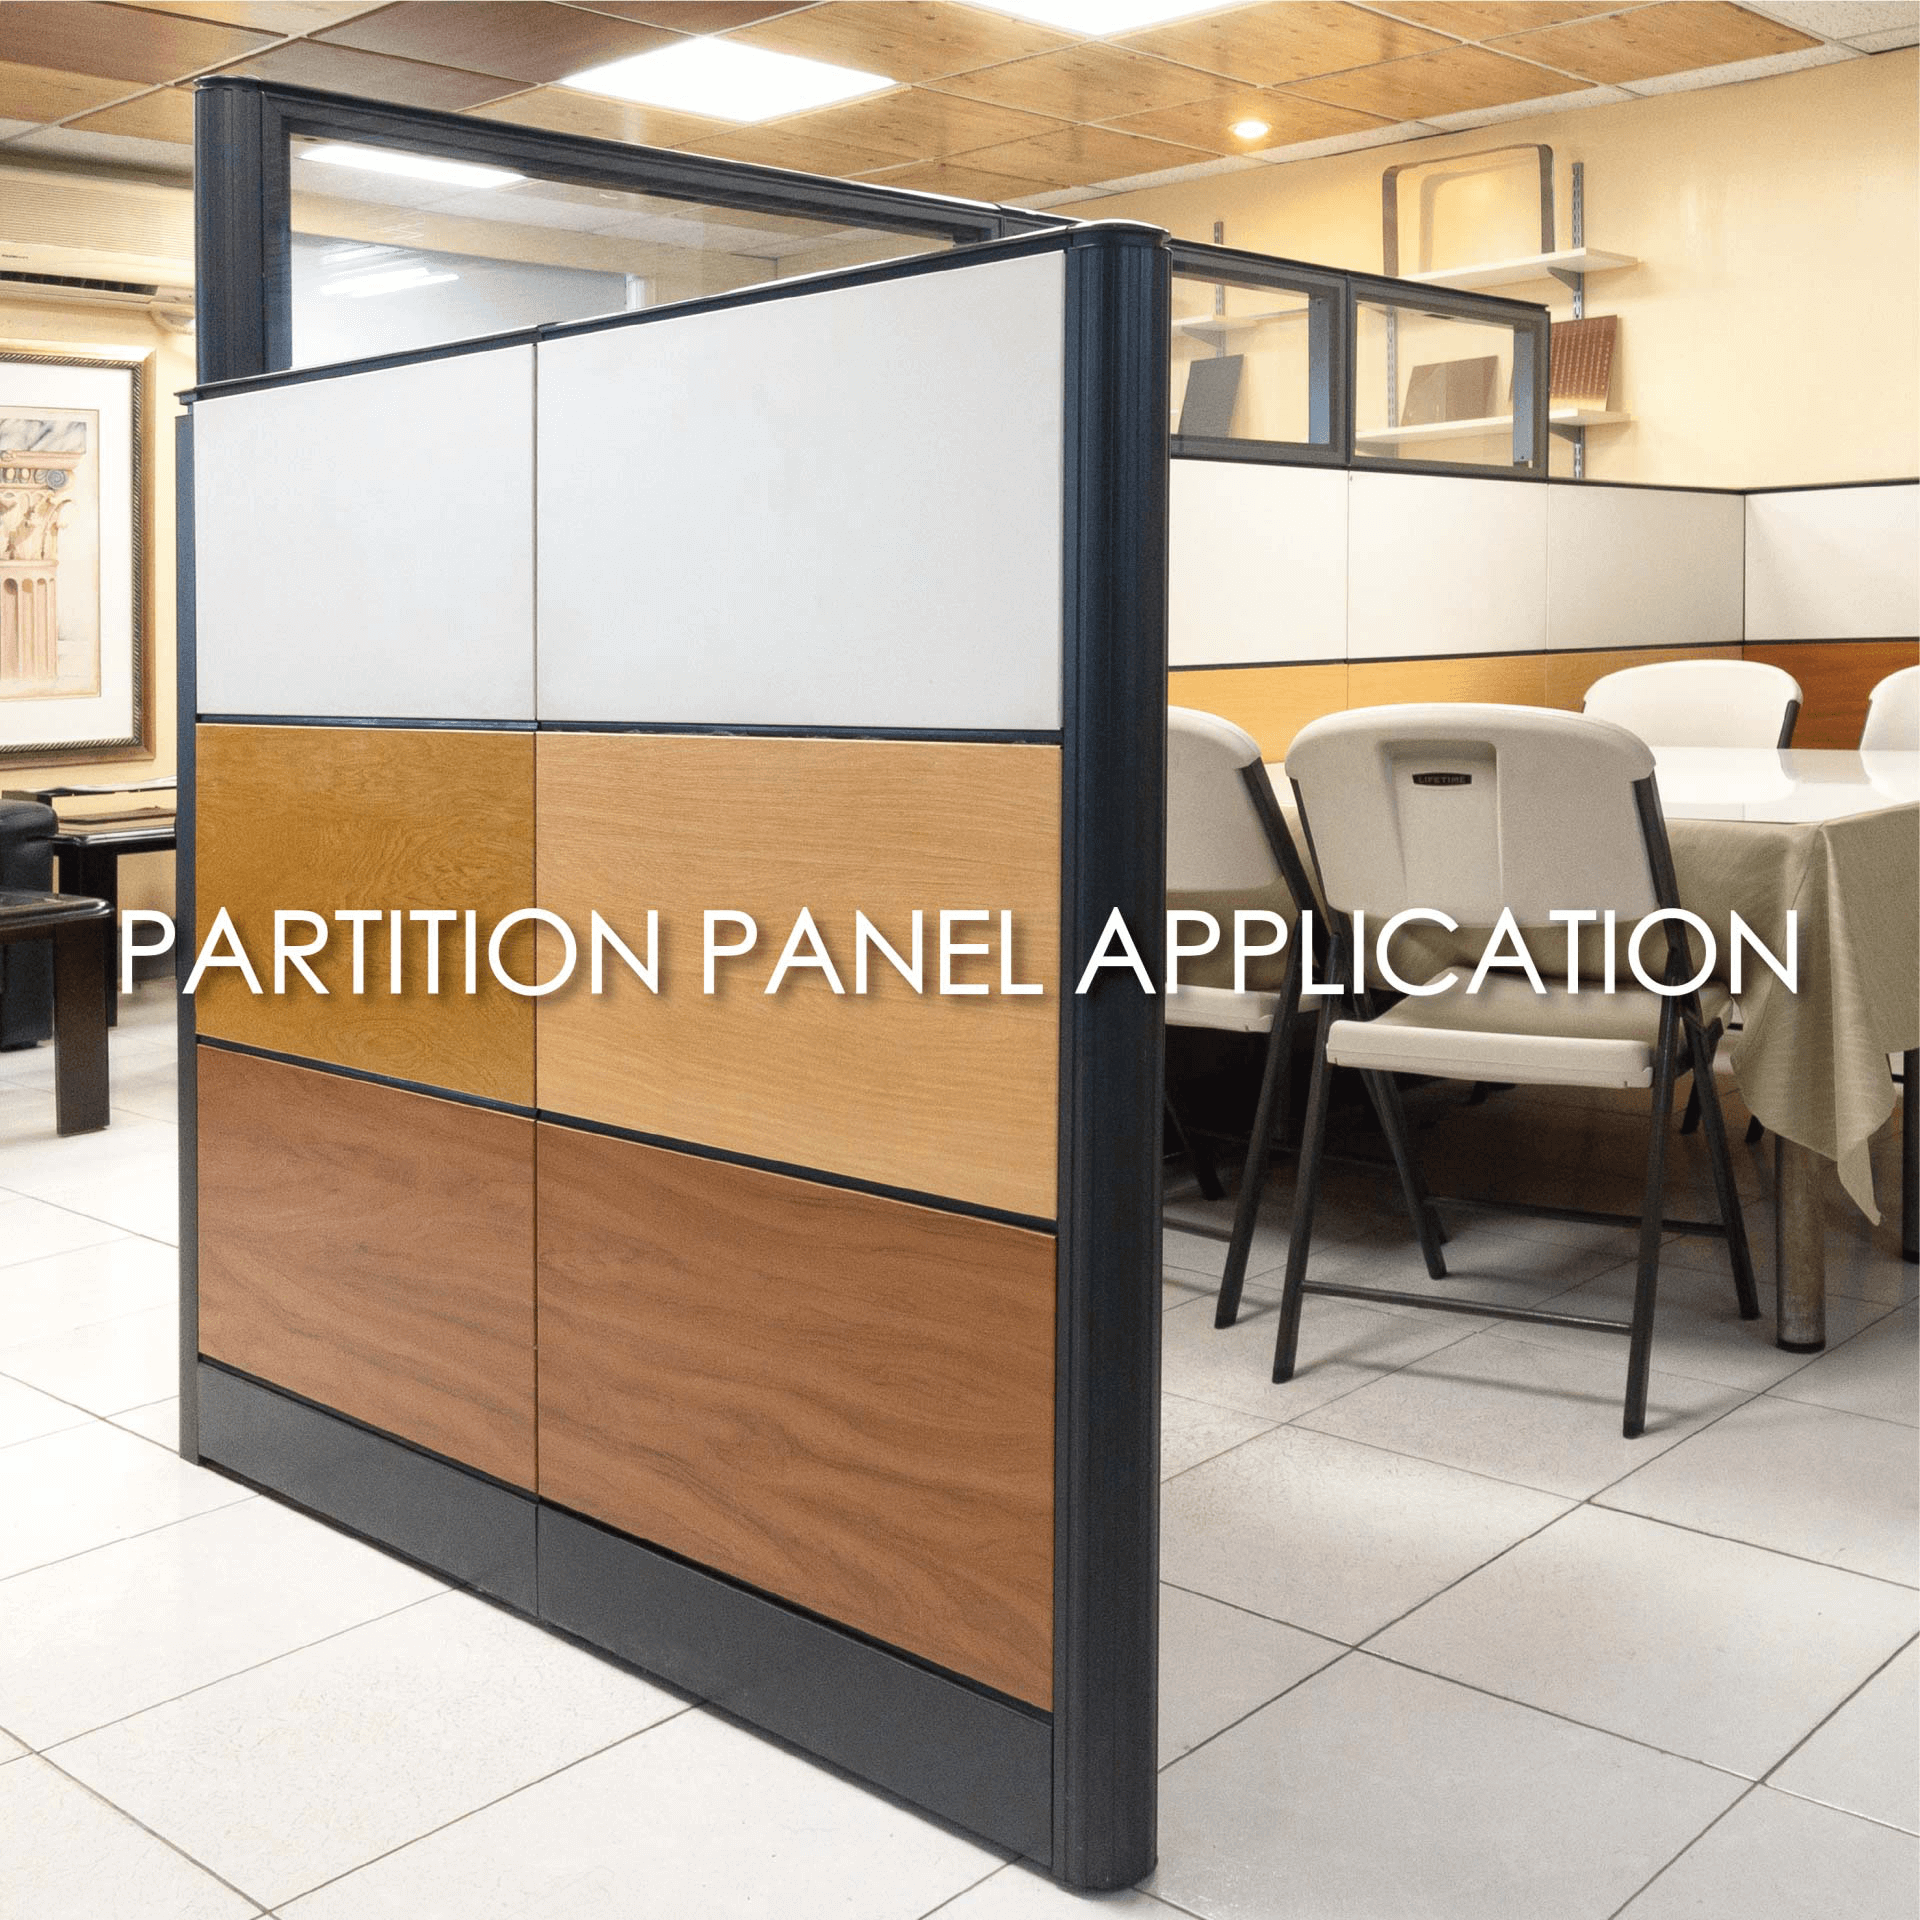 Use of laminated metal to create office compartment screens for added decorative and durability